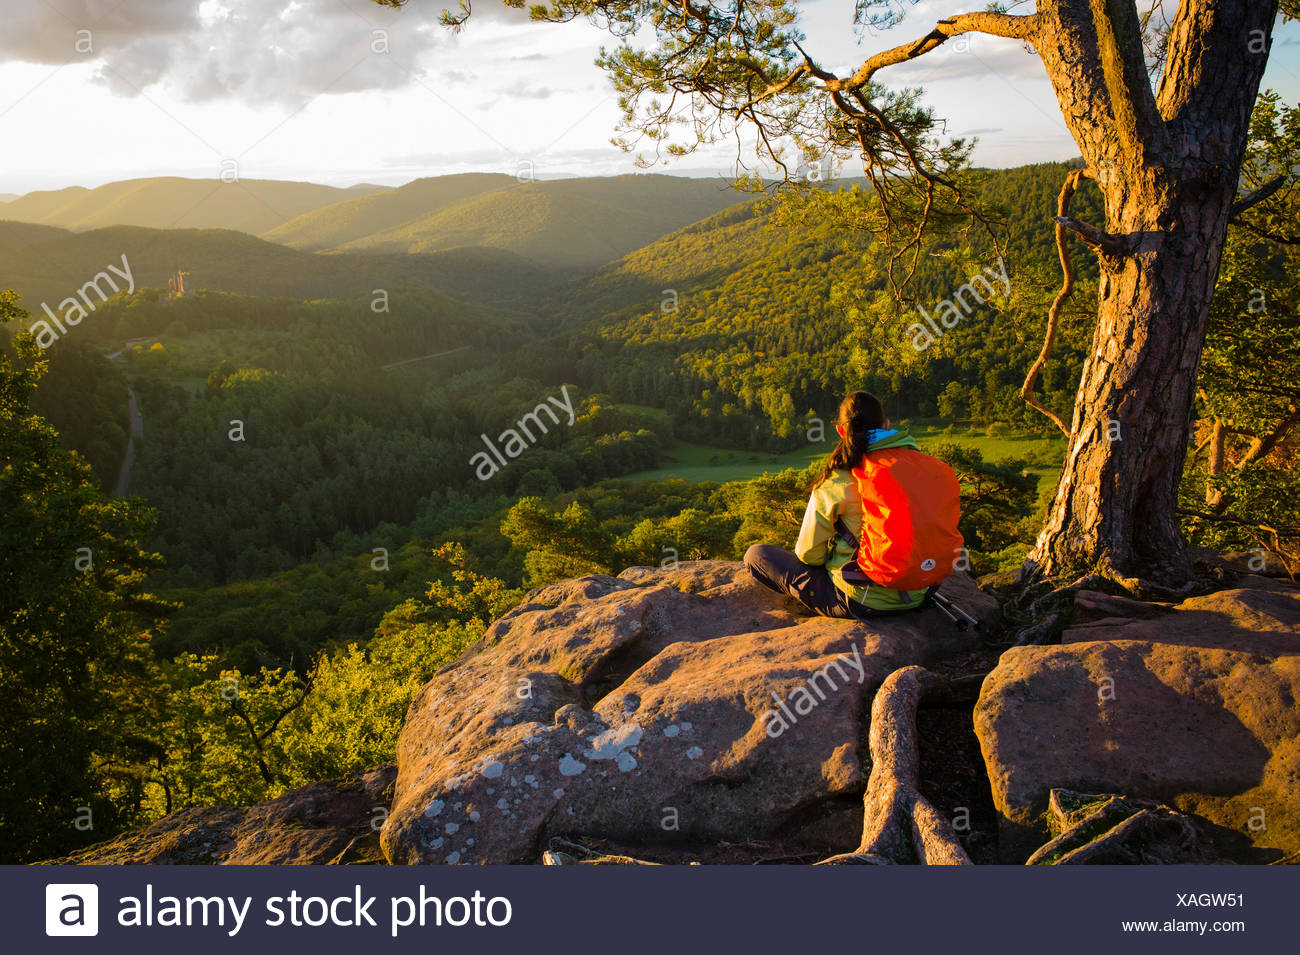 Viewpoint overlooking Fleckenstein Castle near Lembach Alsace France - Stock Image